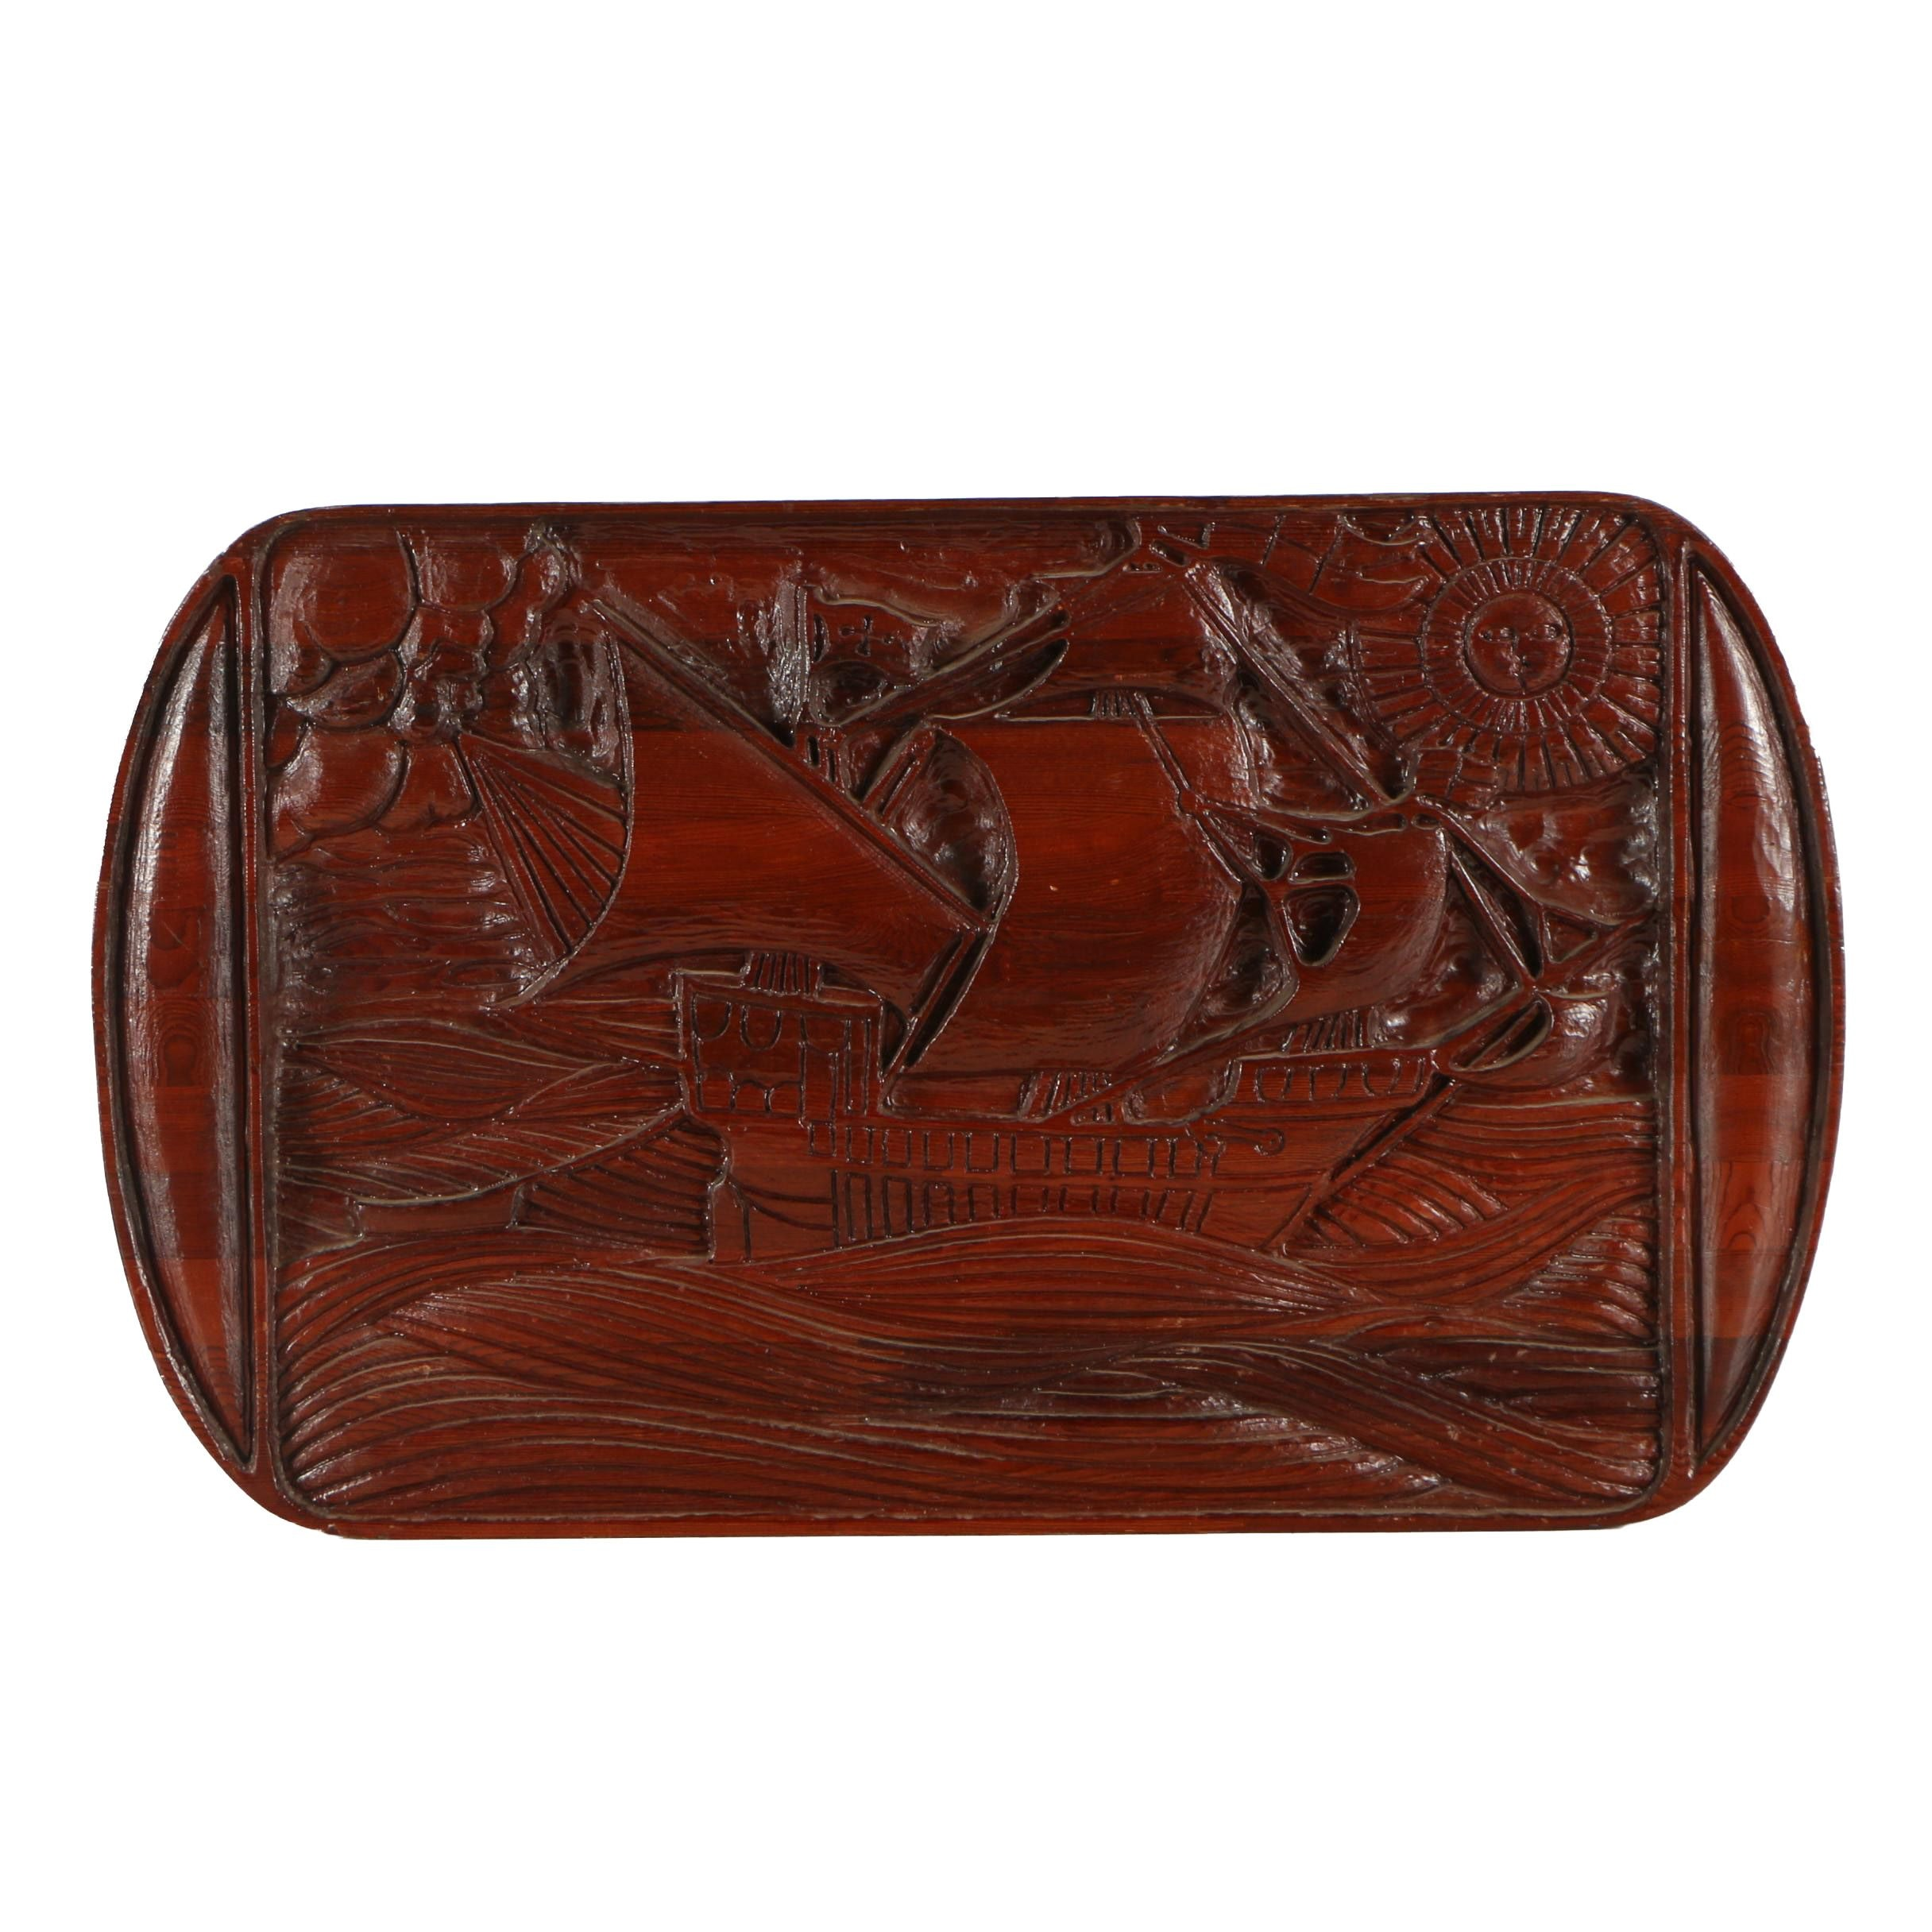 Large Wooden Relief Carving of a Ship at Sea